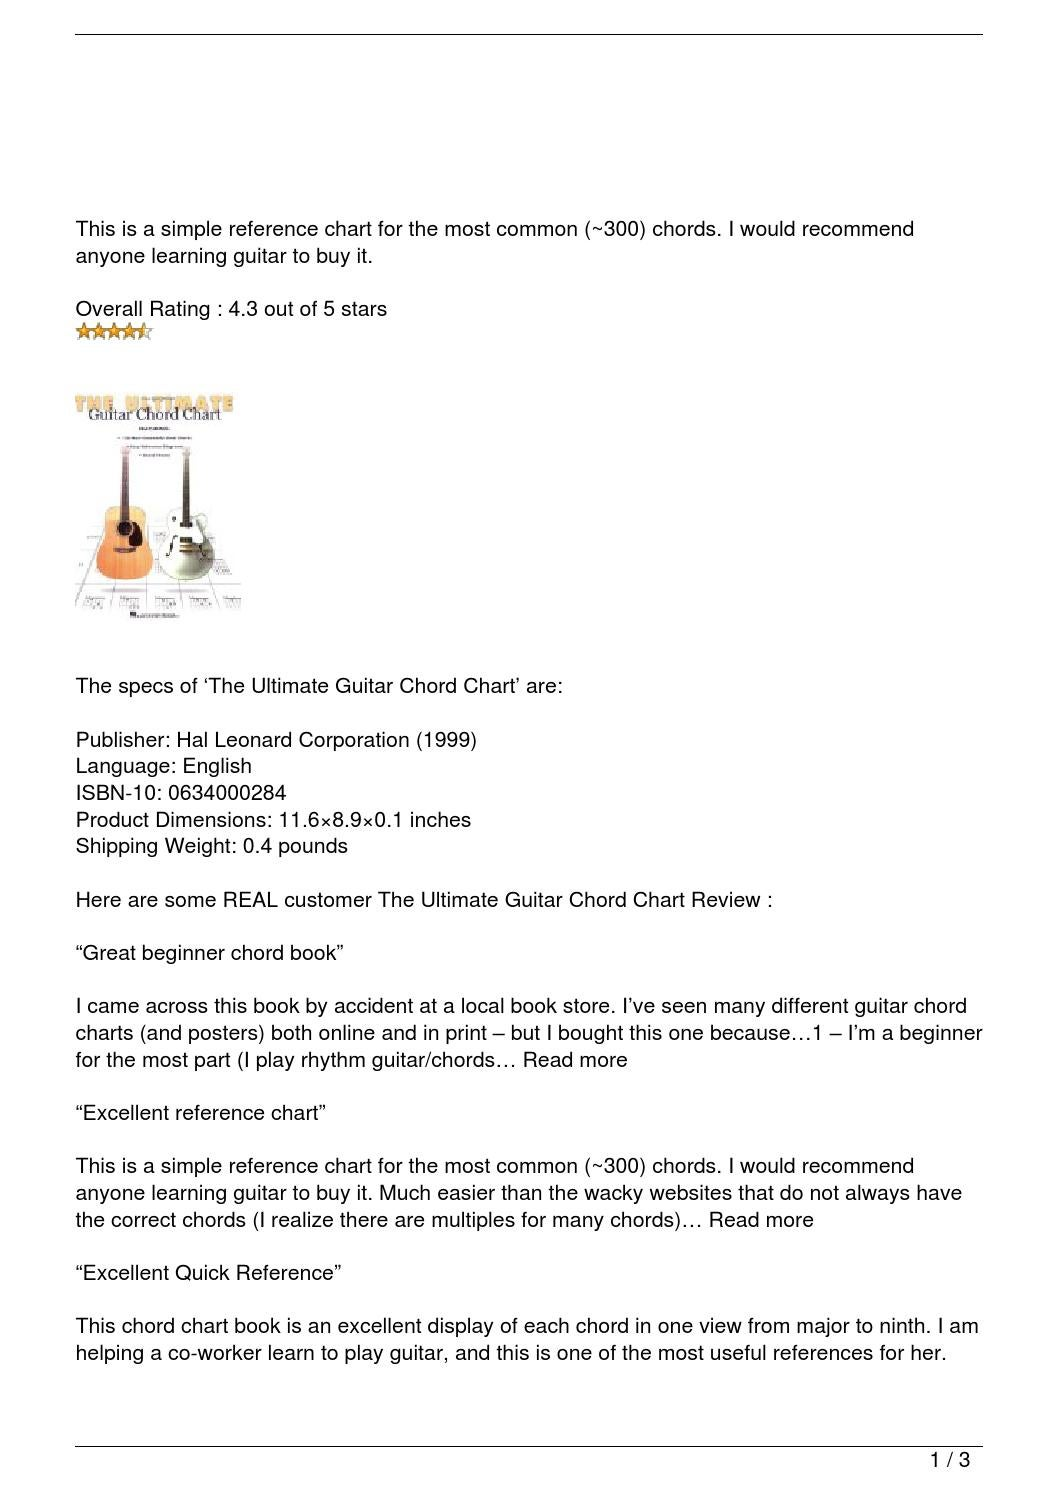 The Ultimate Guitar Chord Chart Review By Ramzi168 Issuu